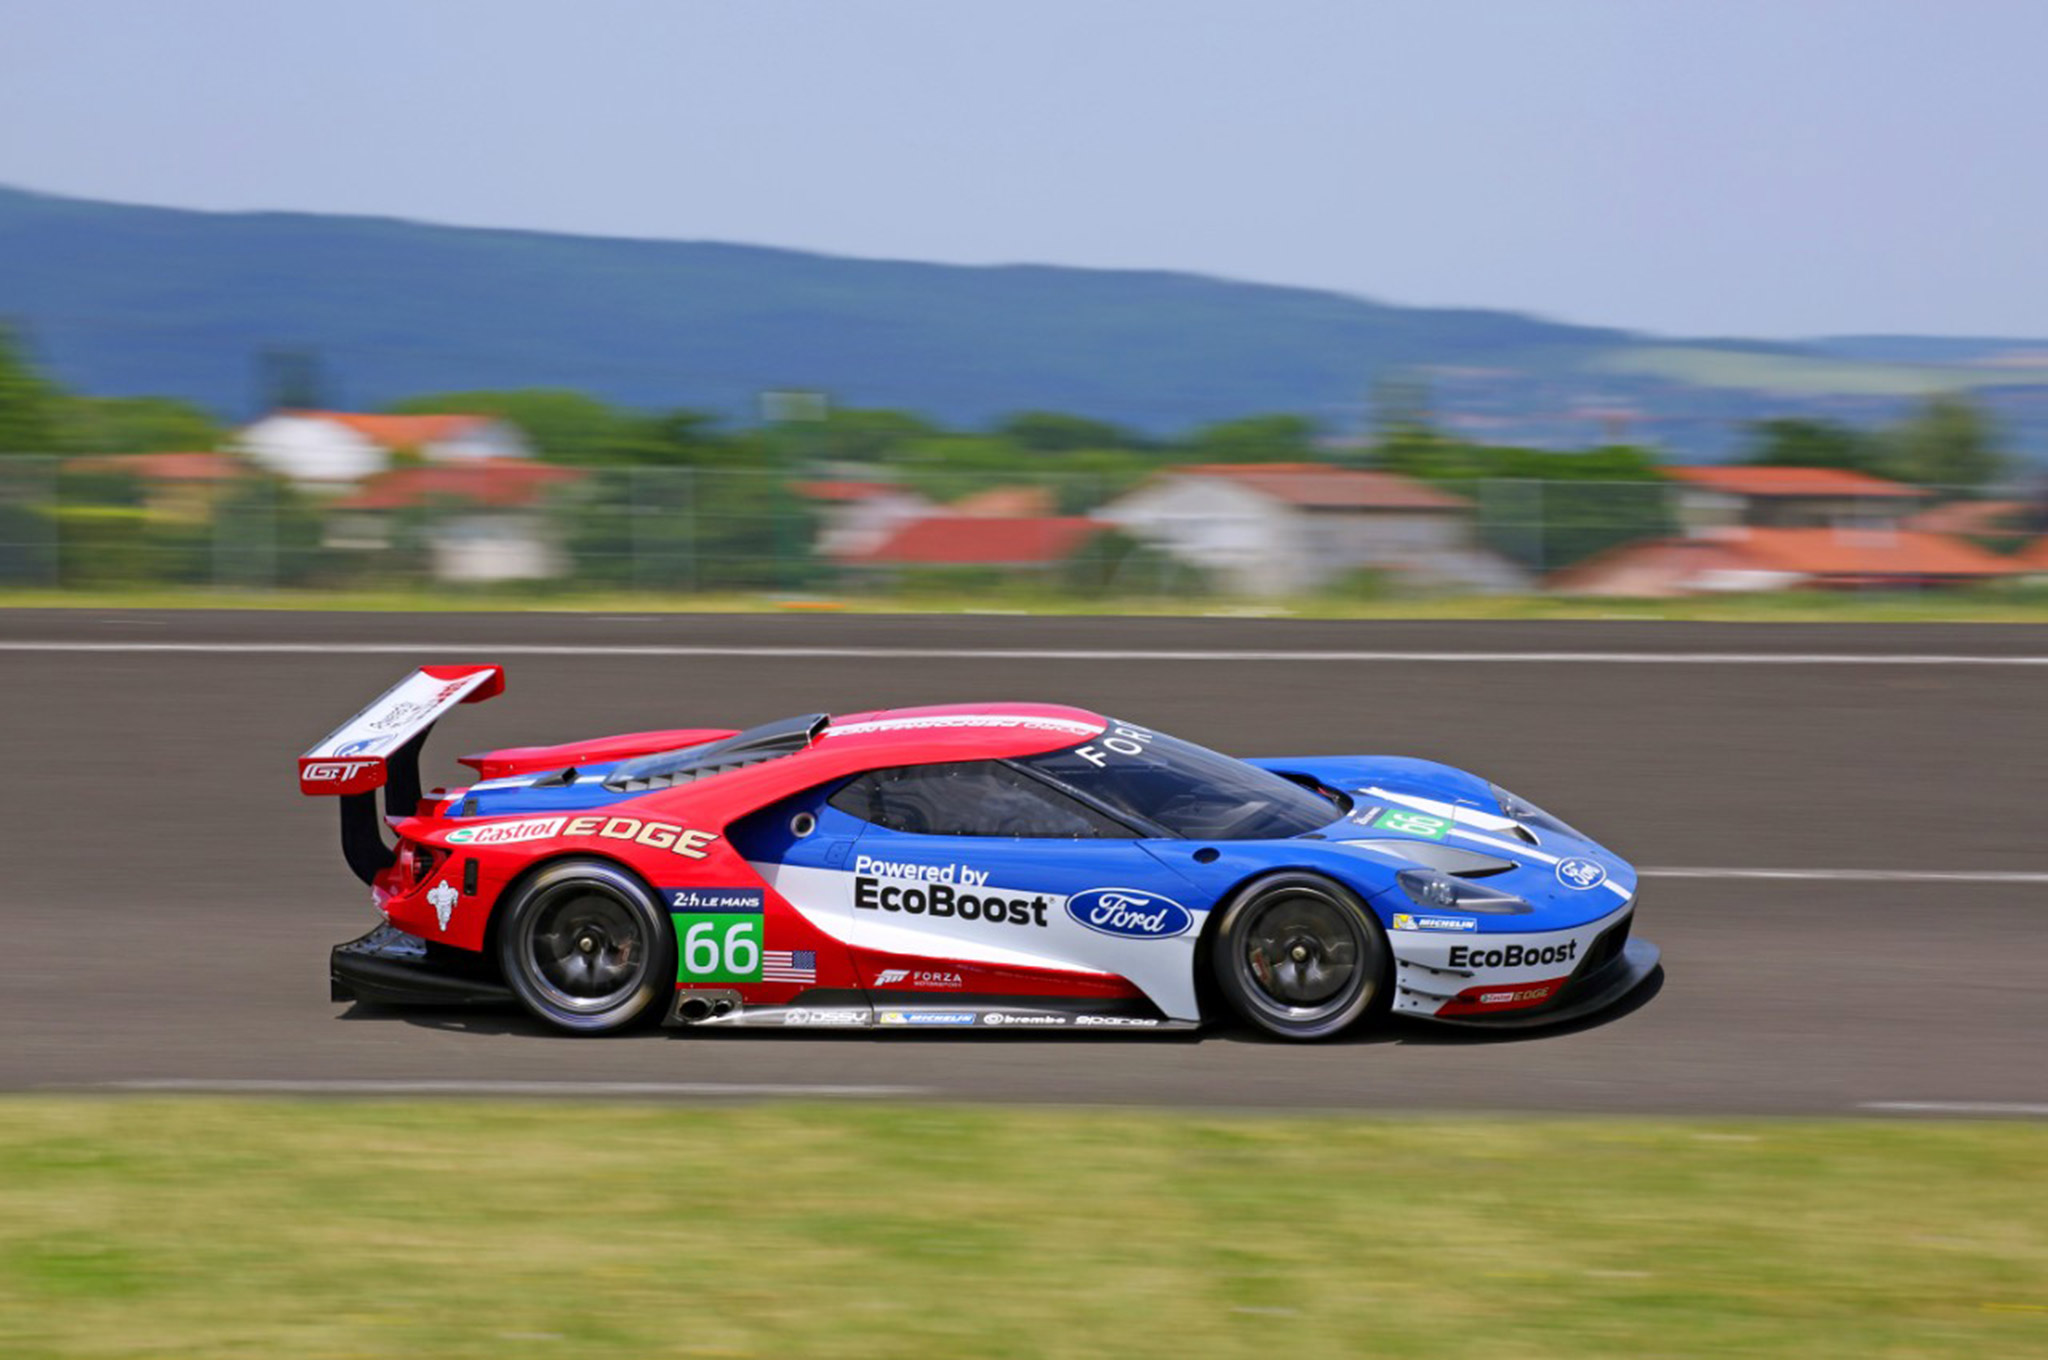 Come out and see the debut of the Ford GT race car and cheer on all of the Ford entries with exclusive parking, chalet access, and much more!